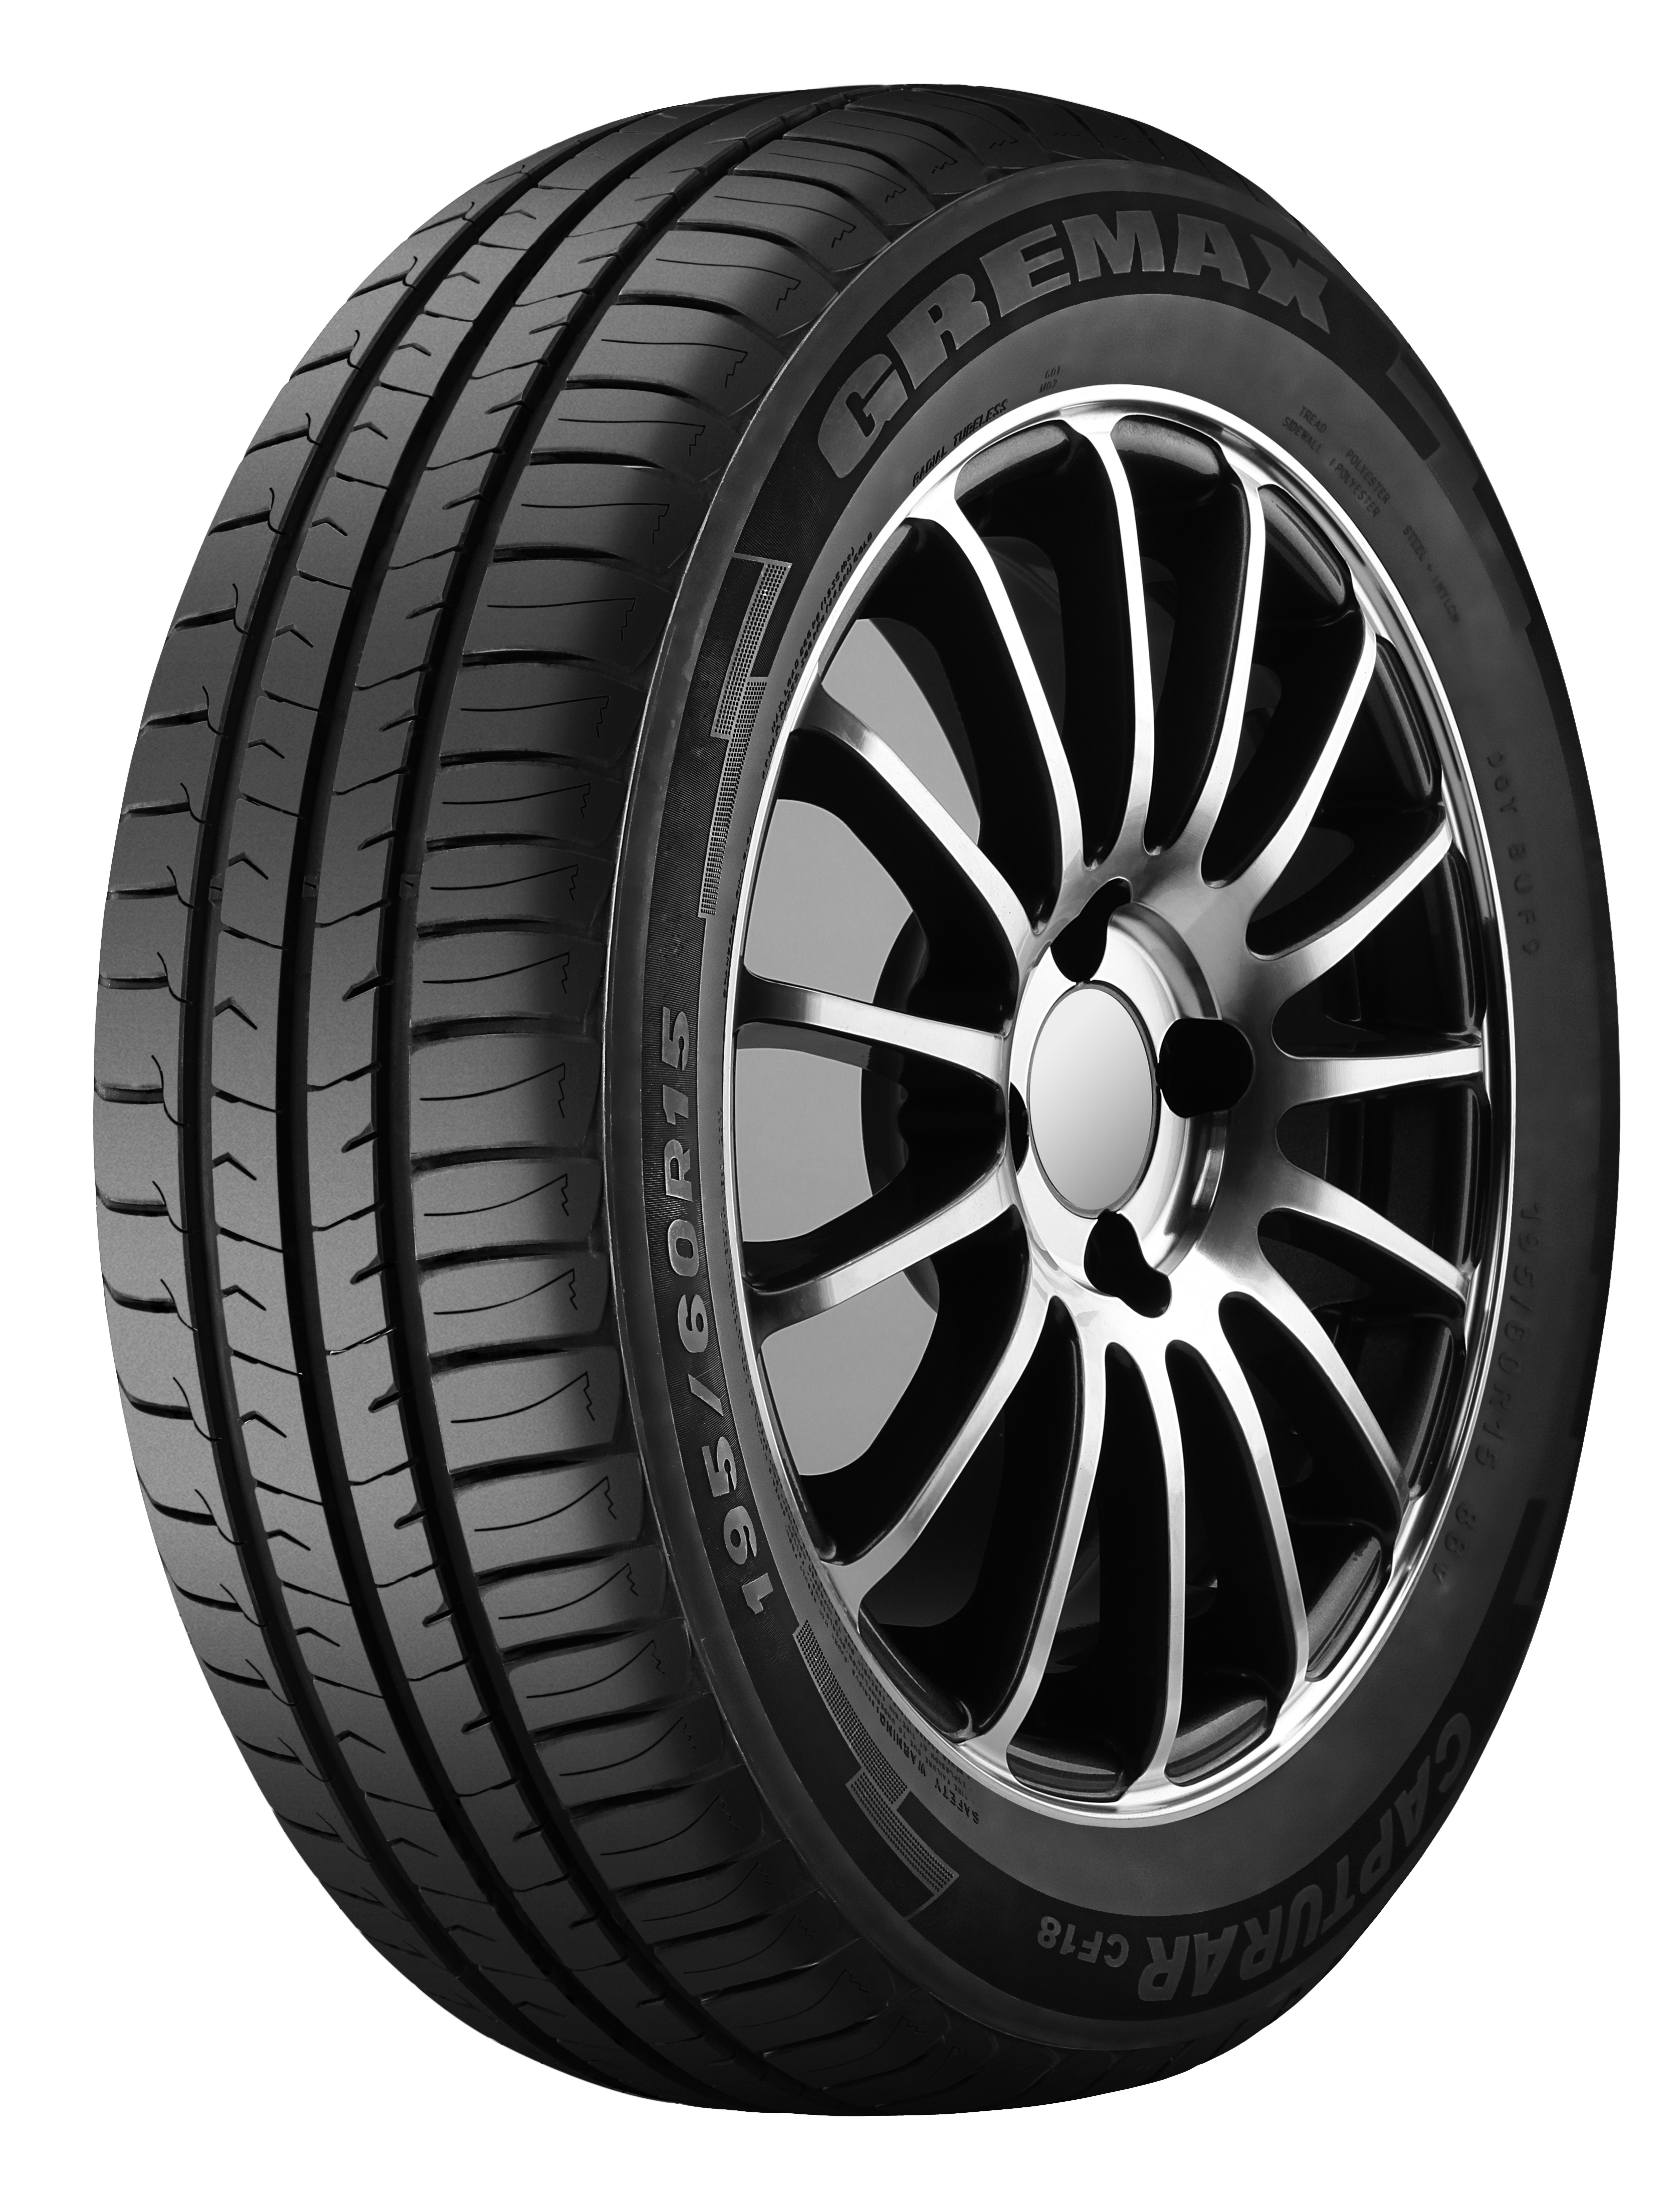 GREMAX 175/65R14 82T CAPTURAR CF18